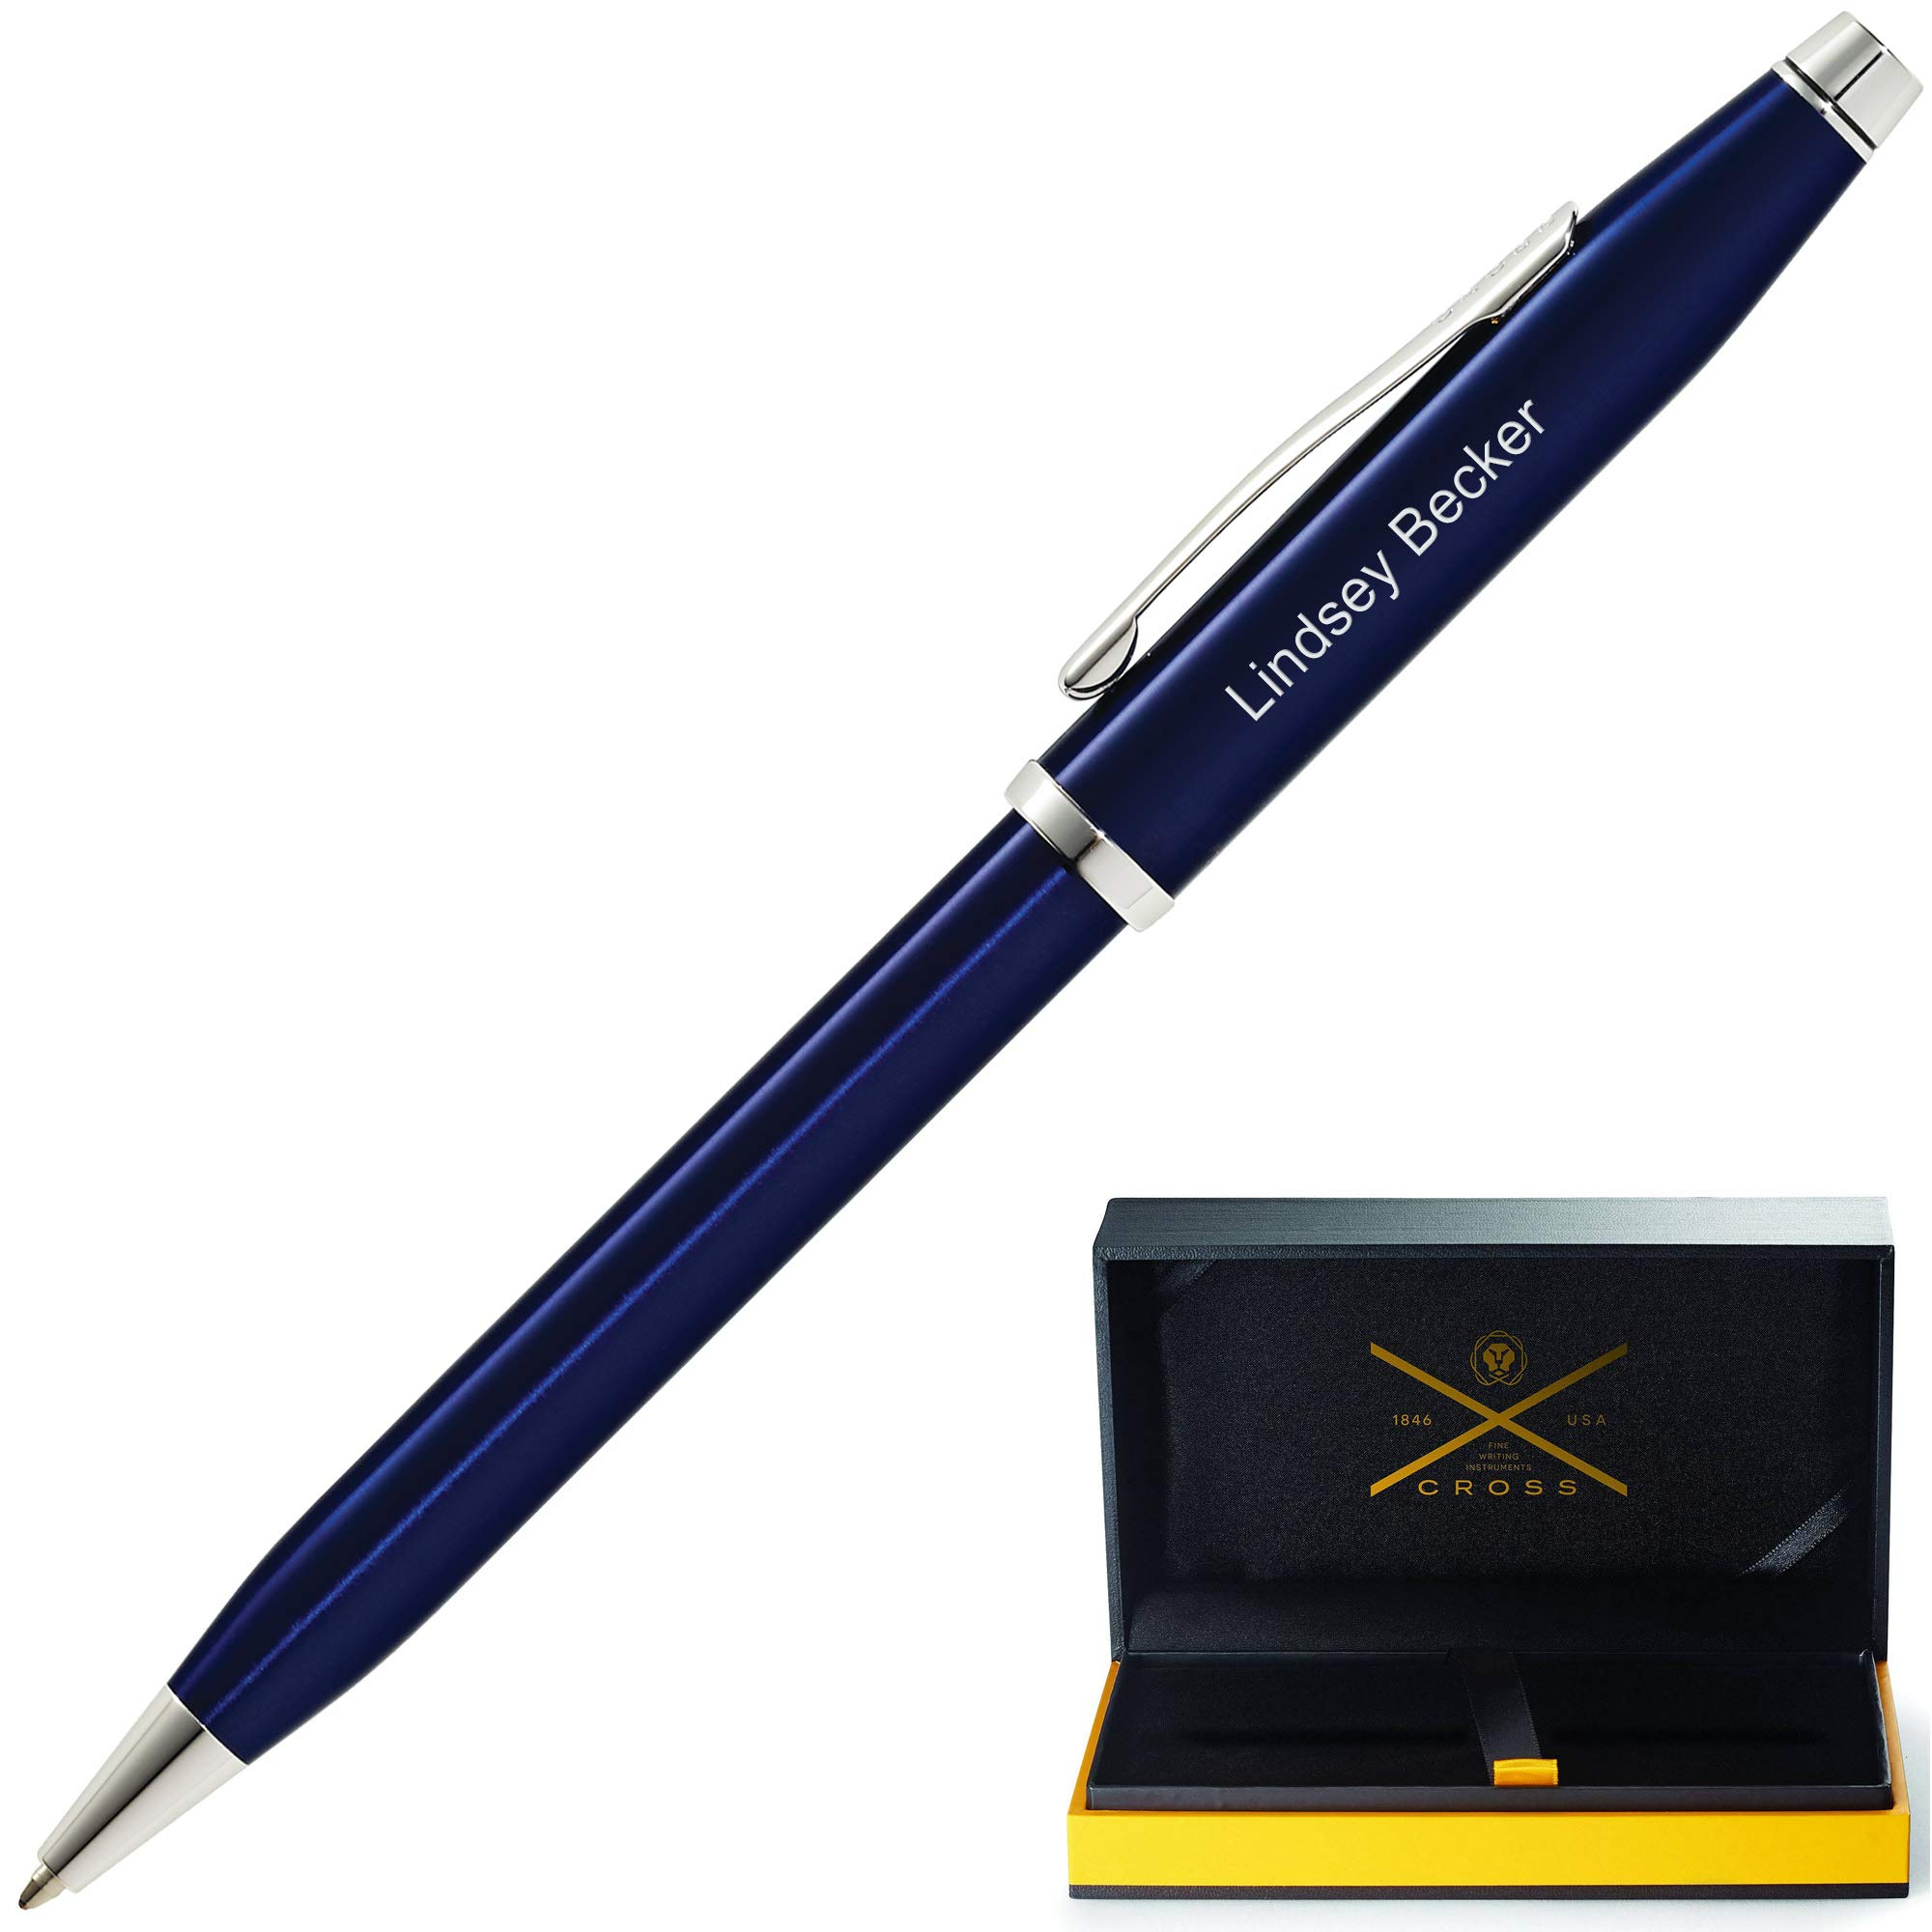 Personalized Cross Century II Translucent Blue Rollerball Pen AT0085-103. Custom Engraving Included!